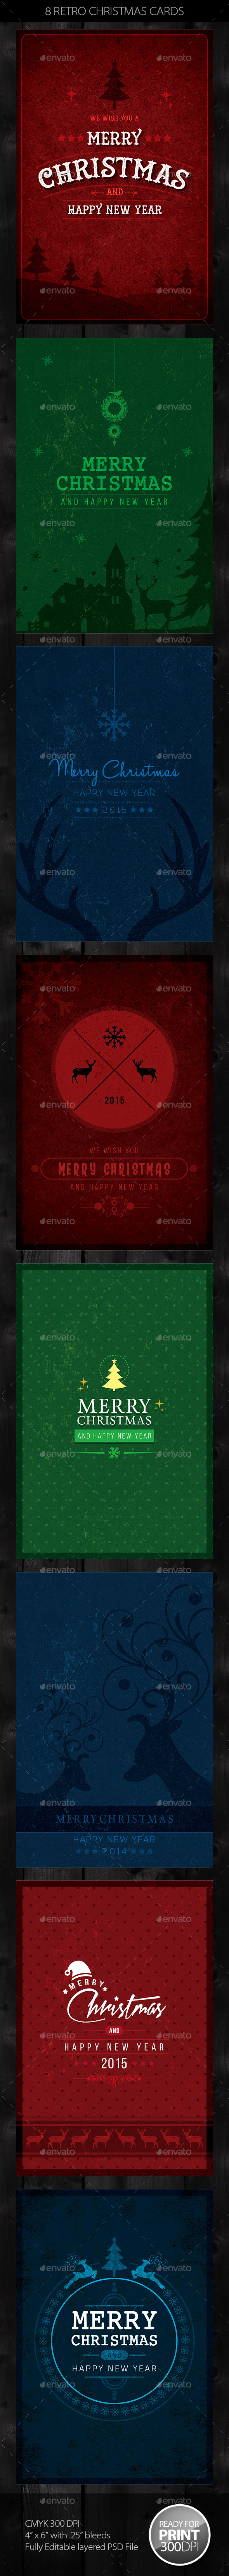 8 Retro Christmas Cards / Invite - Holiday Greeting Cards